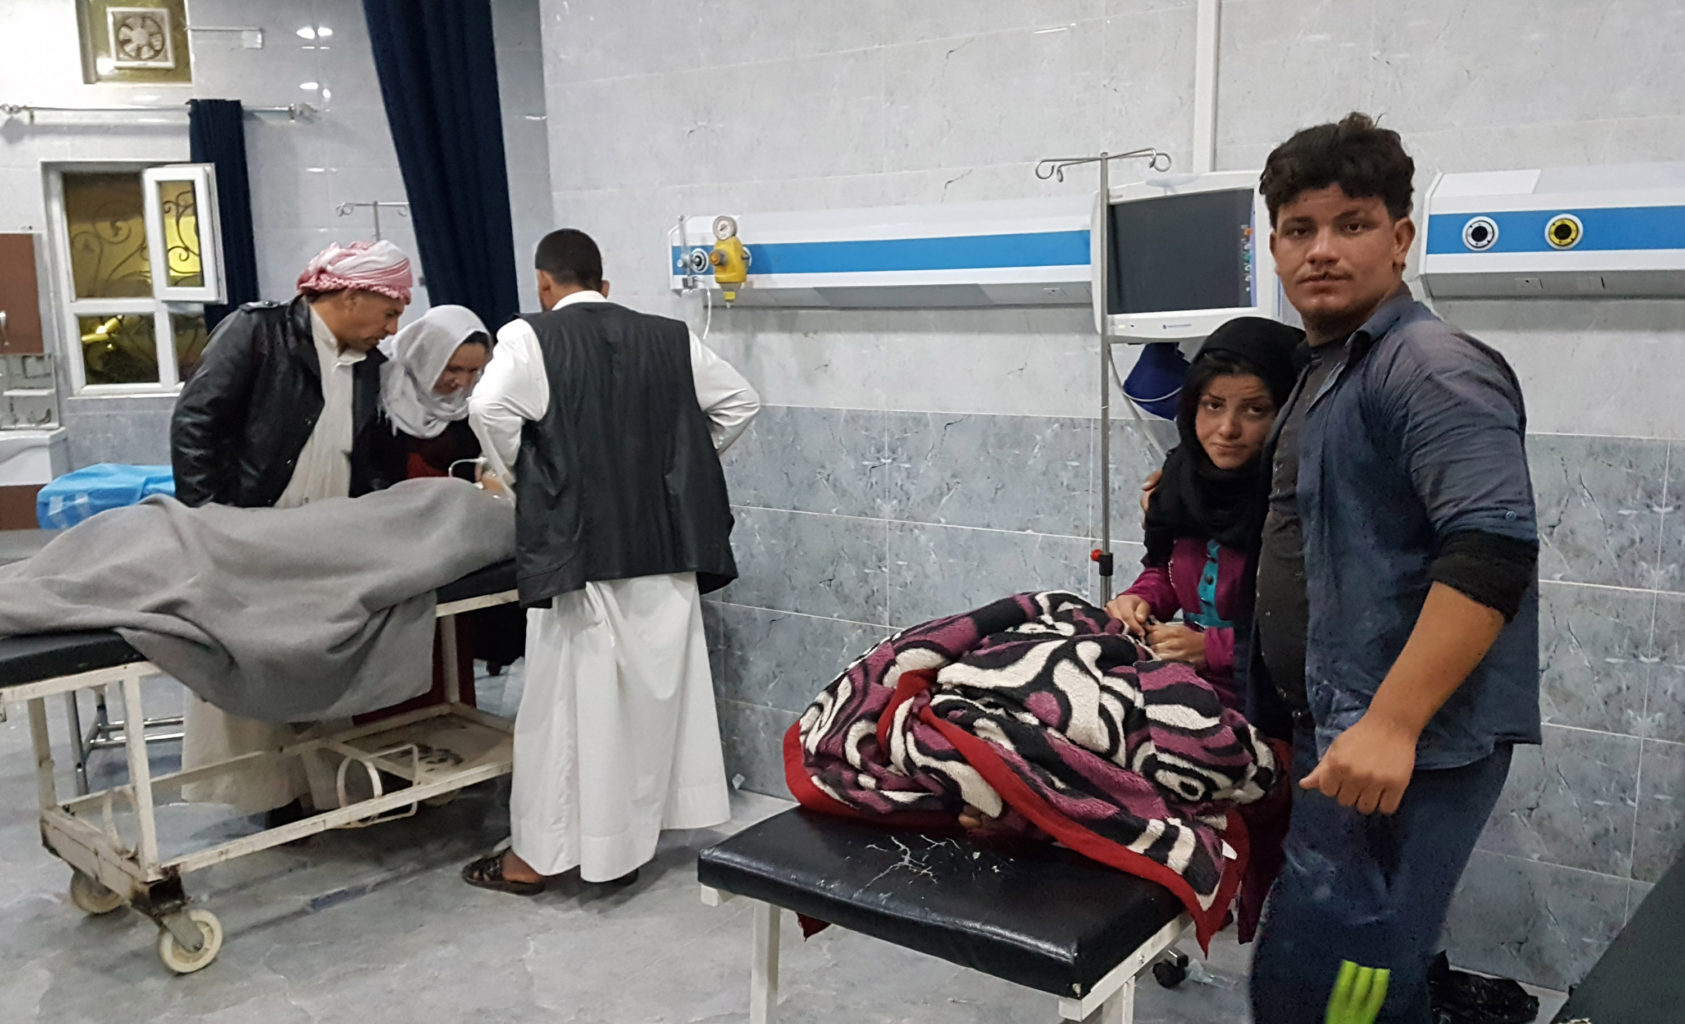 Injured people receive medical treatment in a hospital in Kirkuk, Iraq, on Sunday after an earthquake measuring 7.2 magnitude hit Iraq's northern province of Sulaimaniyah. (Xinhua/Raizer Zangana/Sipa USA/TNS)